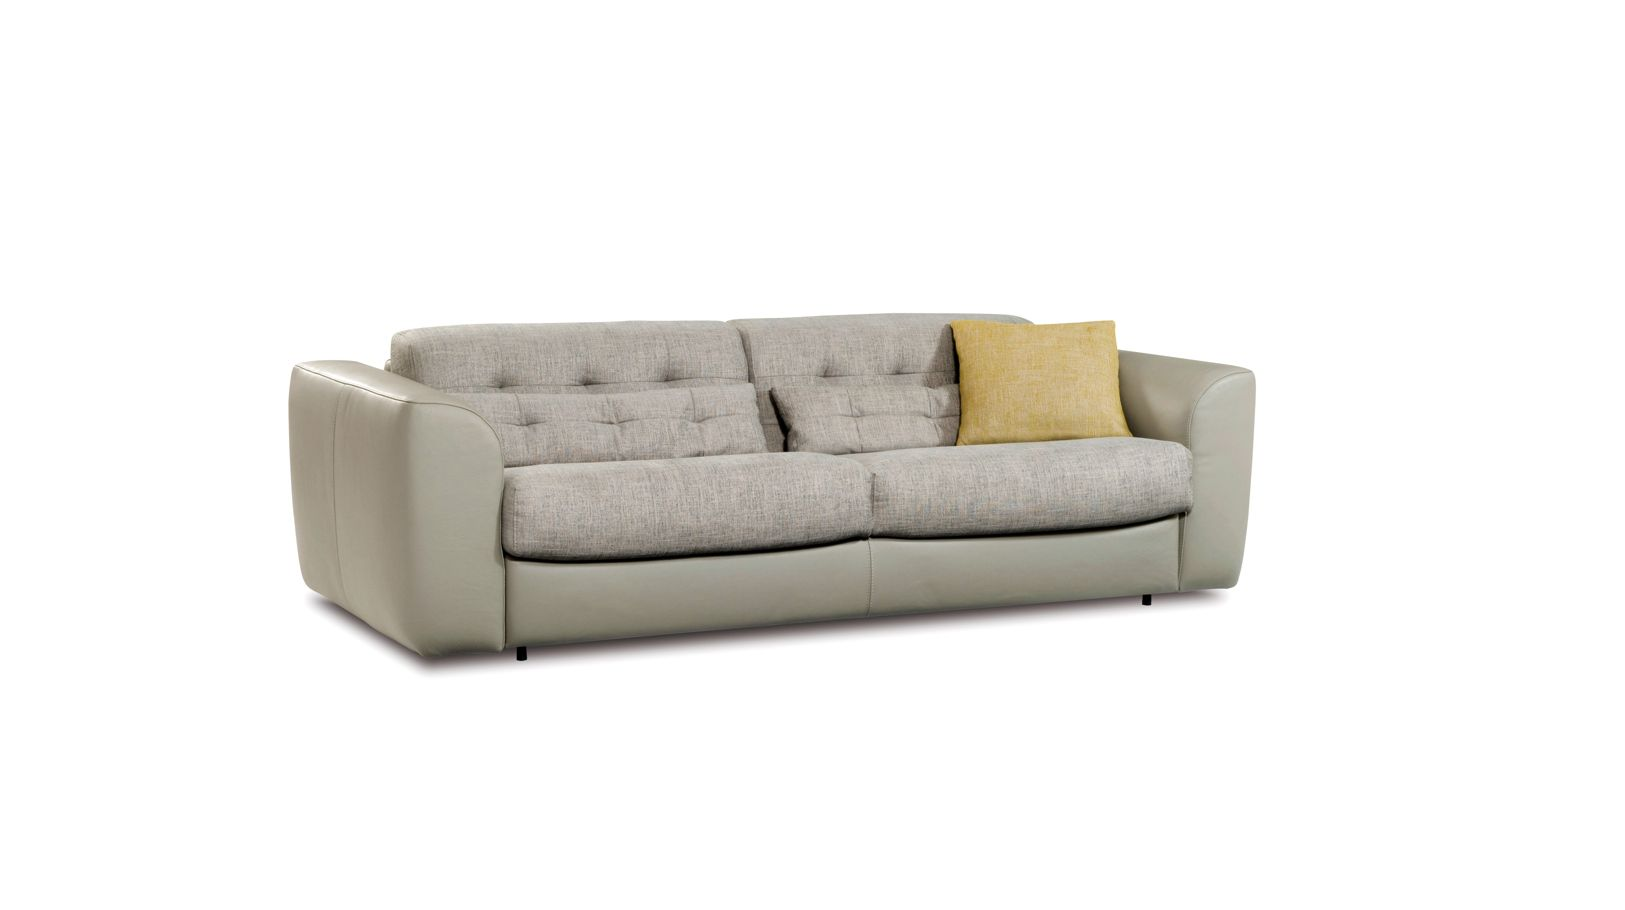 Grand canape convertible 3 places nocturnes roche bobois - Grand canape convertible ...